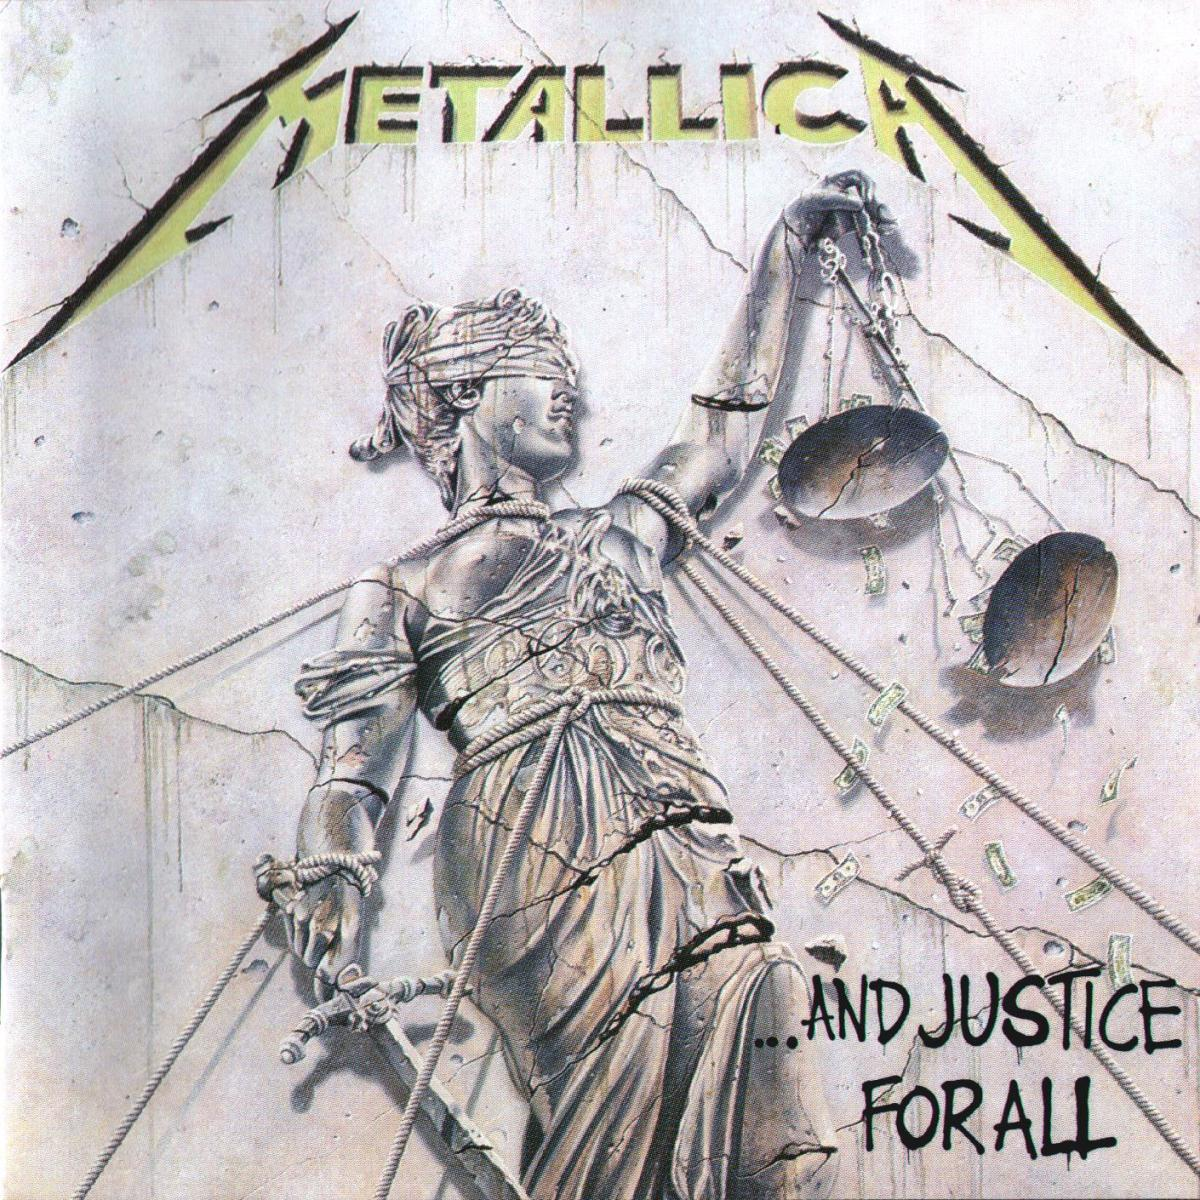 Review of And Justice for All: One of the greatest heavy metal albums of all time